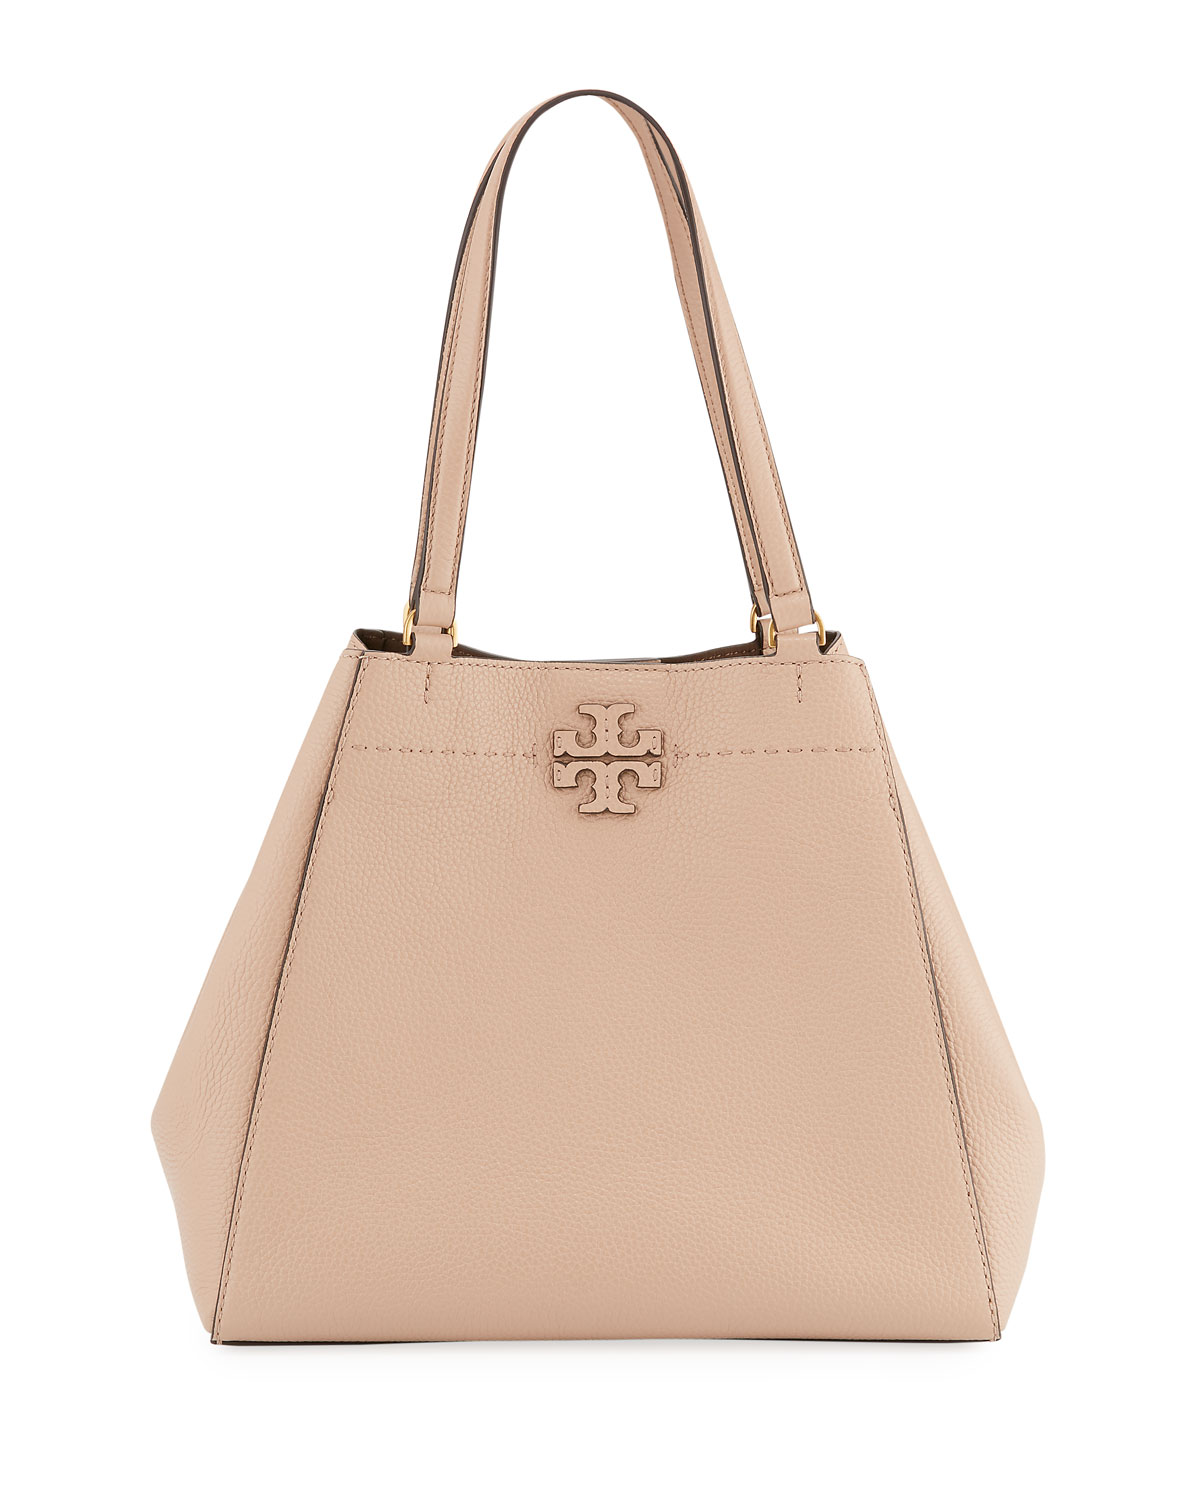 f6a2b8c5fd2 Tory Burch McGraw Carryall Leather Tote Bag